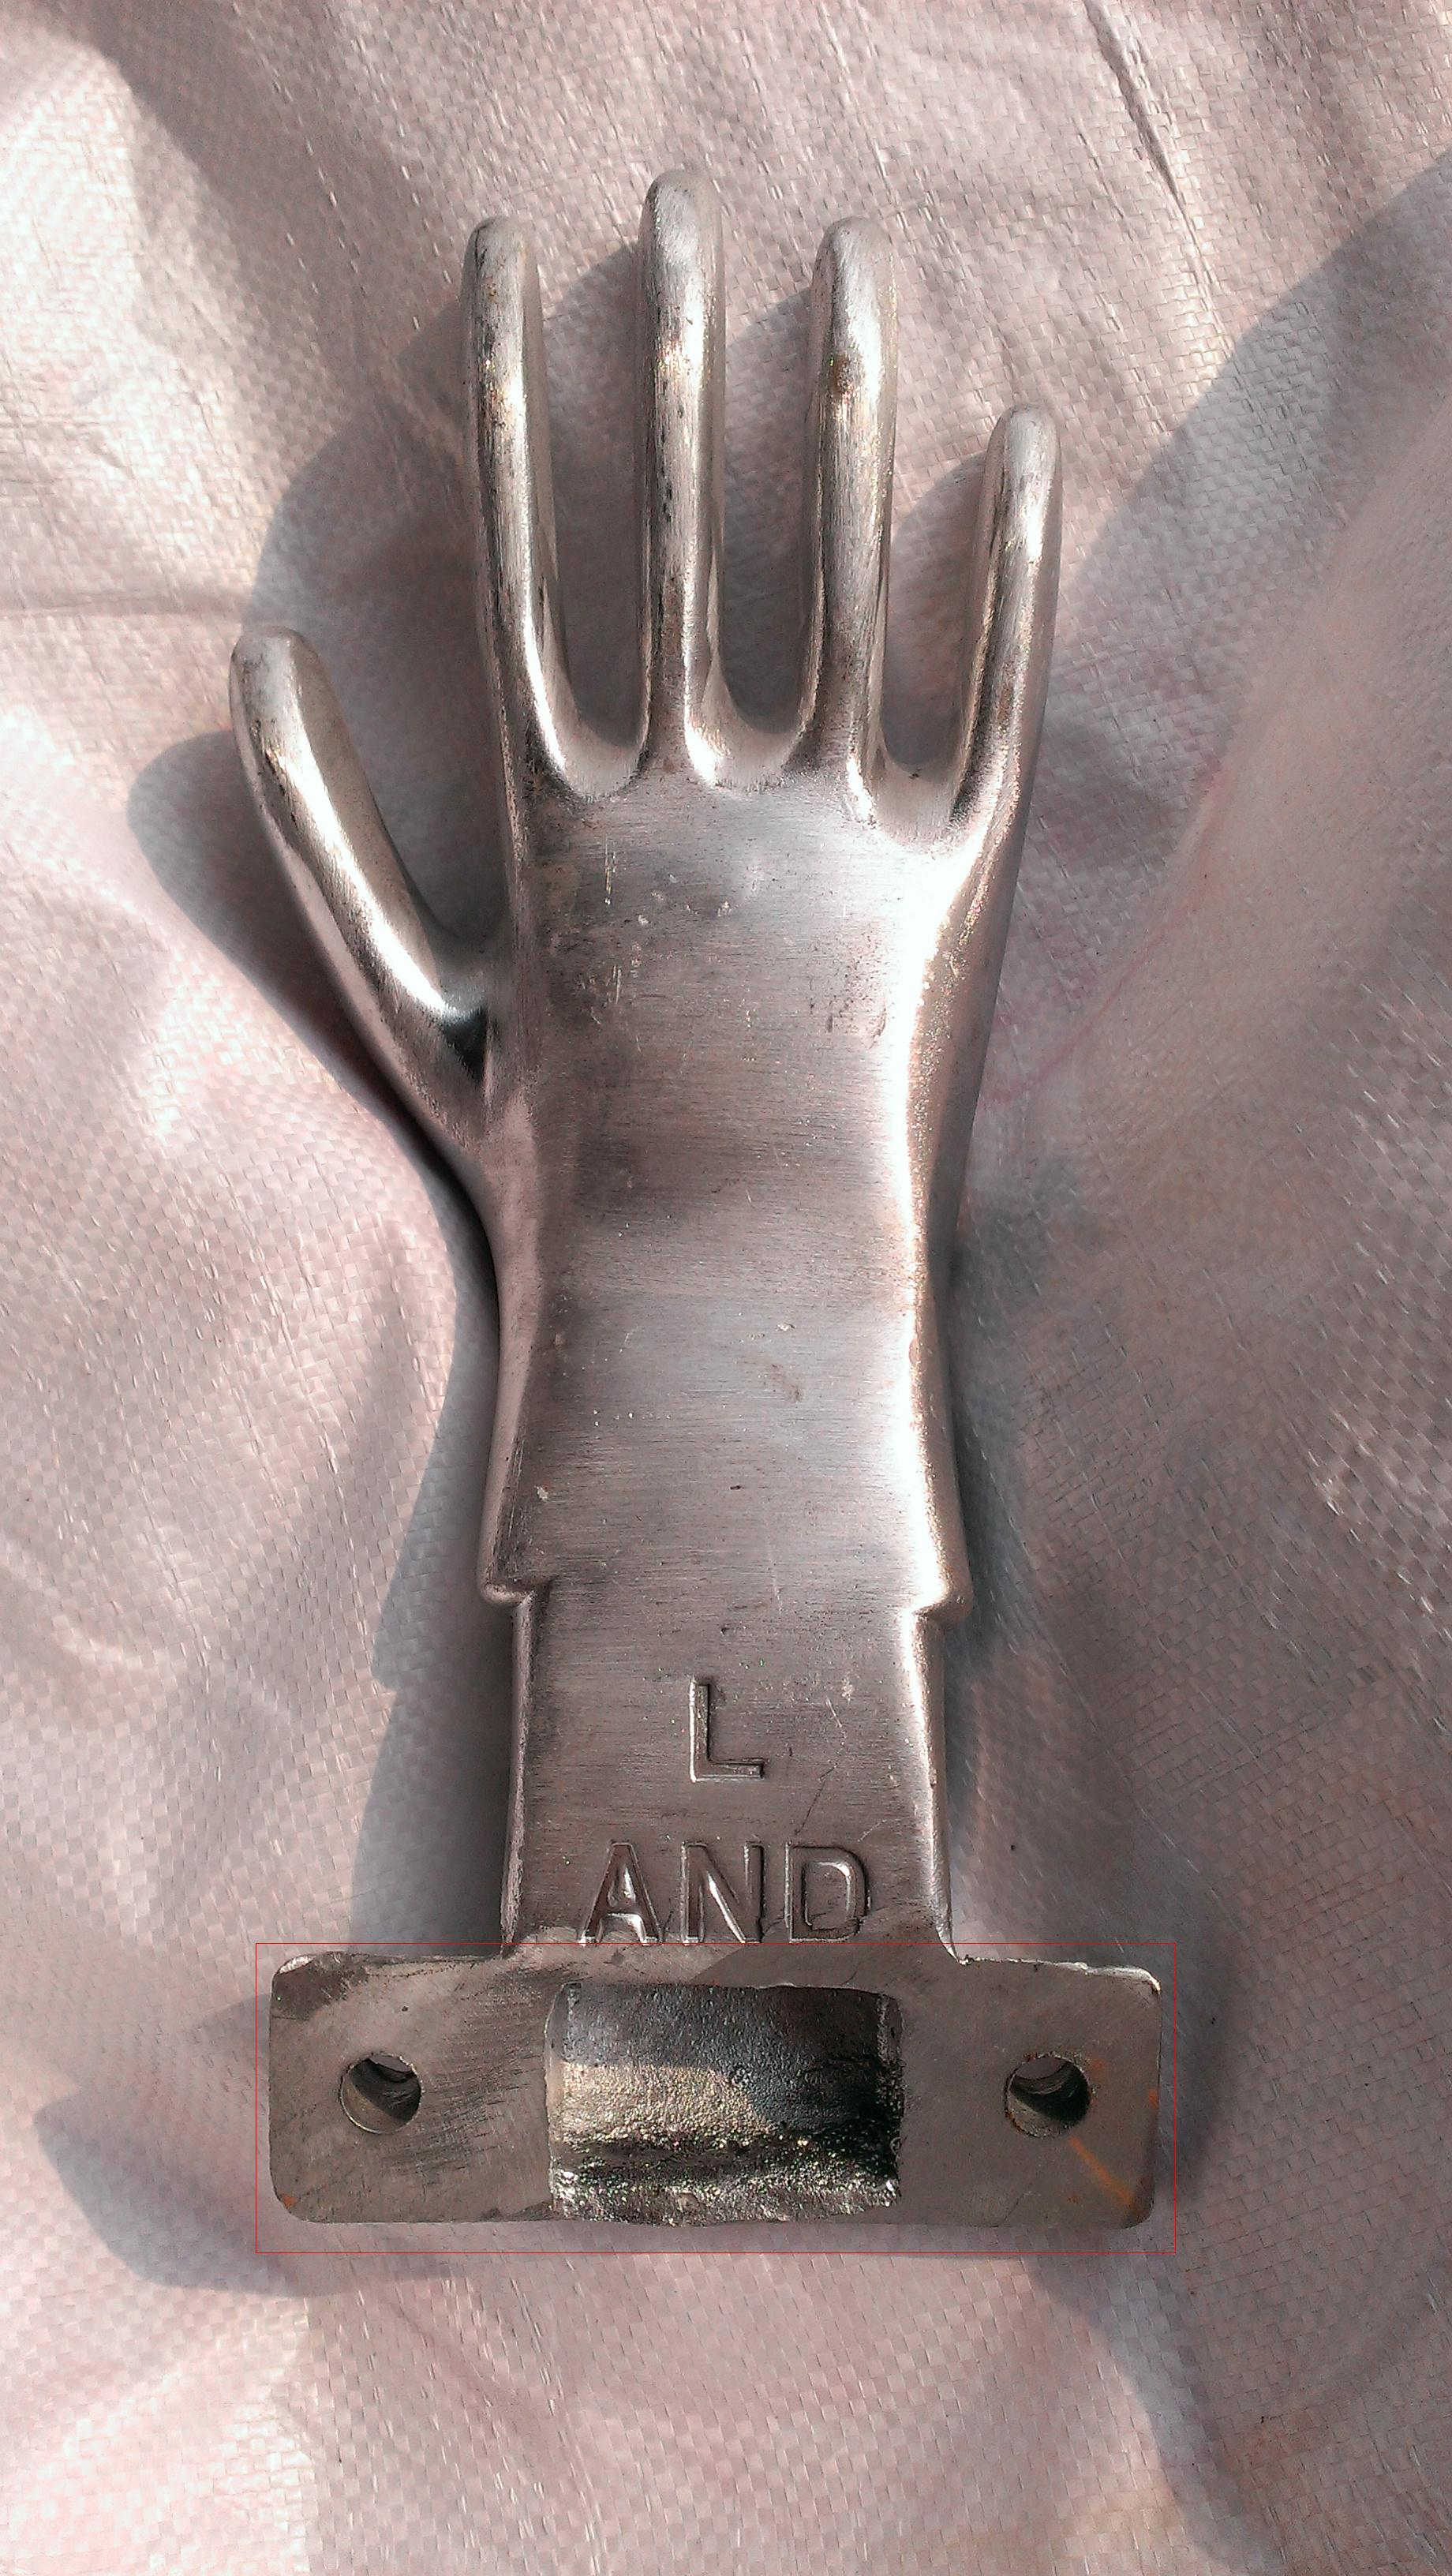 glove mould for Nitrile/Latex dipping gloves